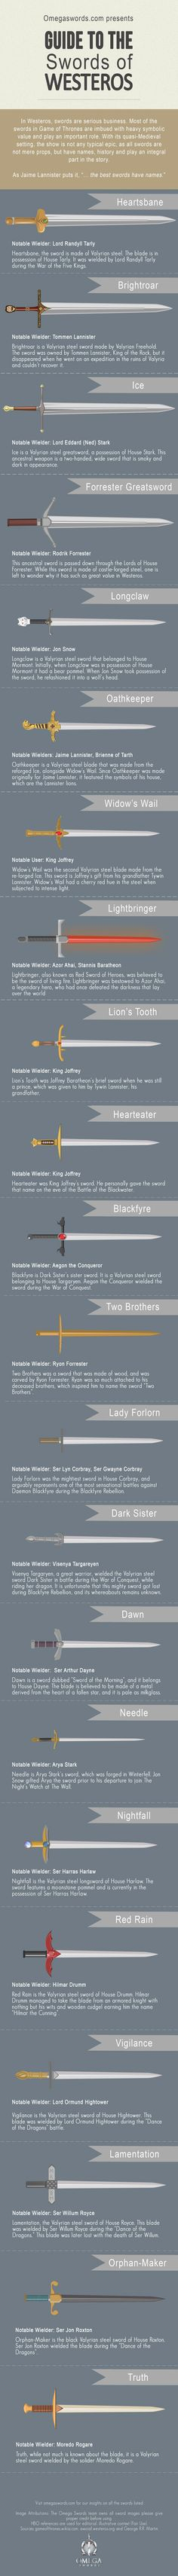 Game of Thrones Sword Guide